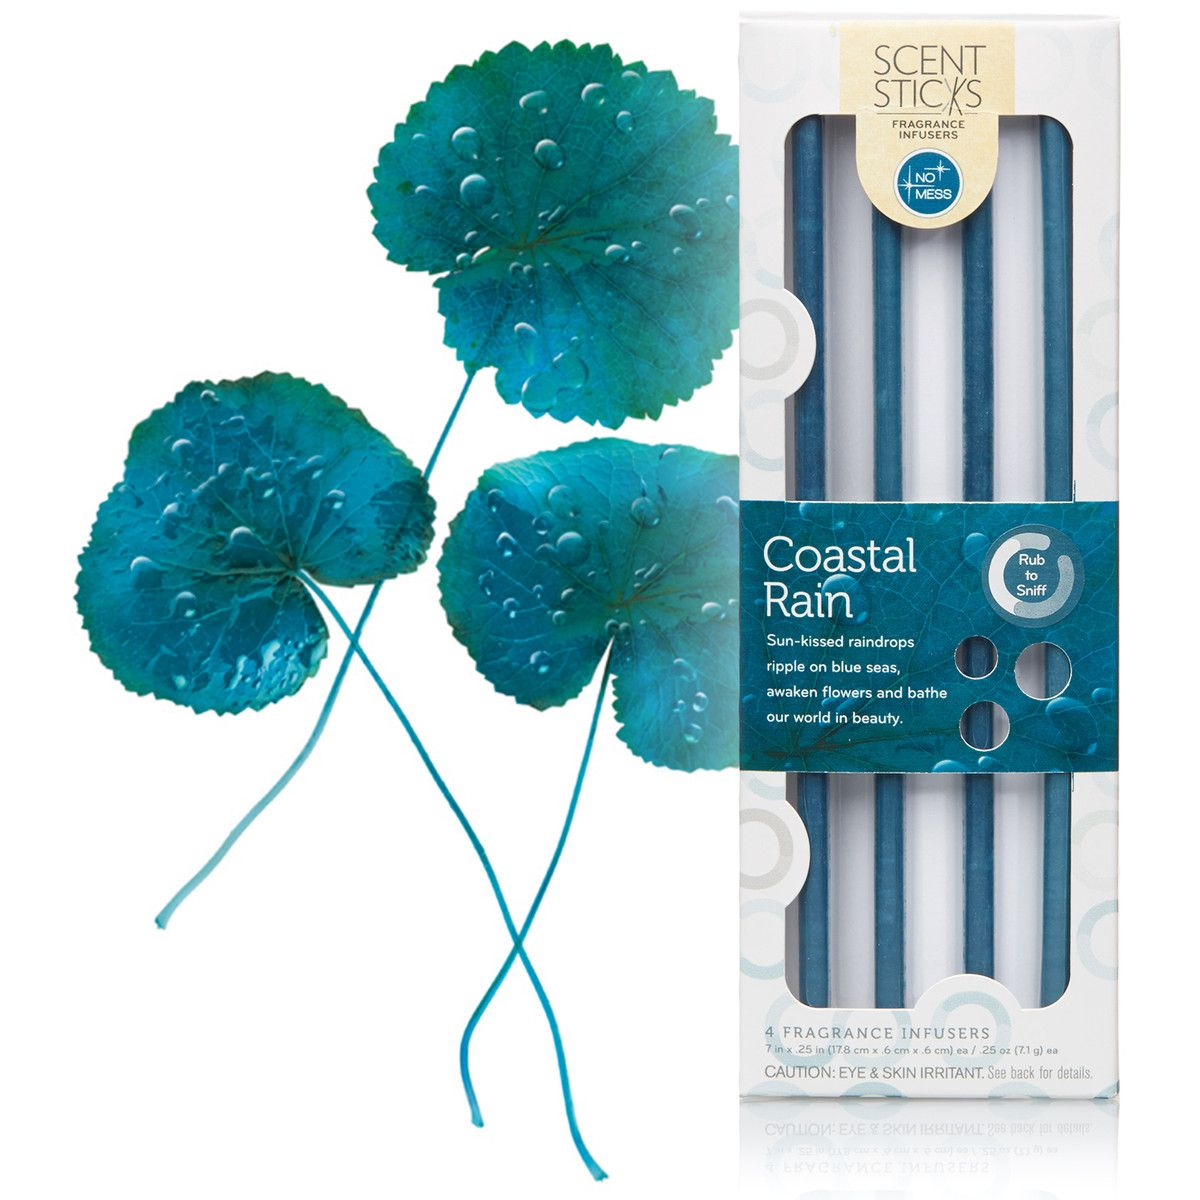 Each Pack Contains 4 Coastal Rain ScentSticks Fragrance Infusers, The Ideal  Pack Size For Refreshing A Bedroom Or Bathroom. Try The 4 Packs In Multiple  ...